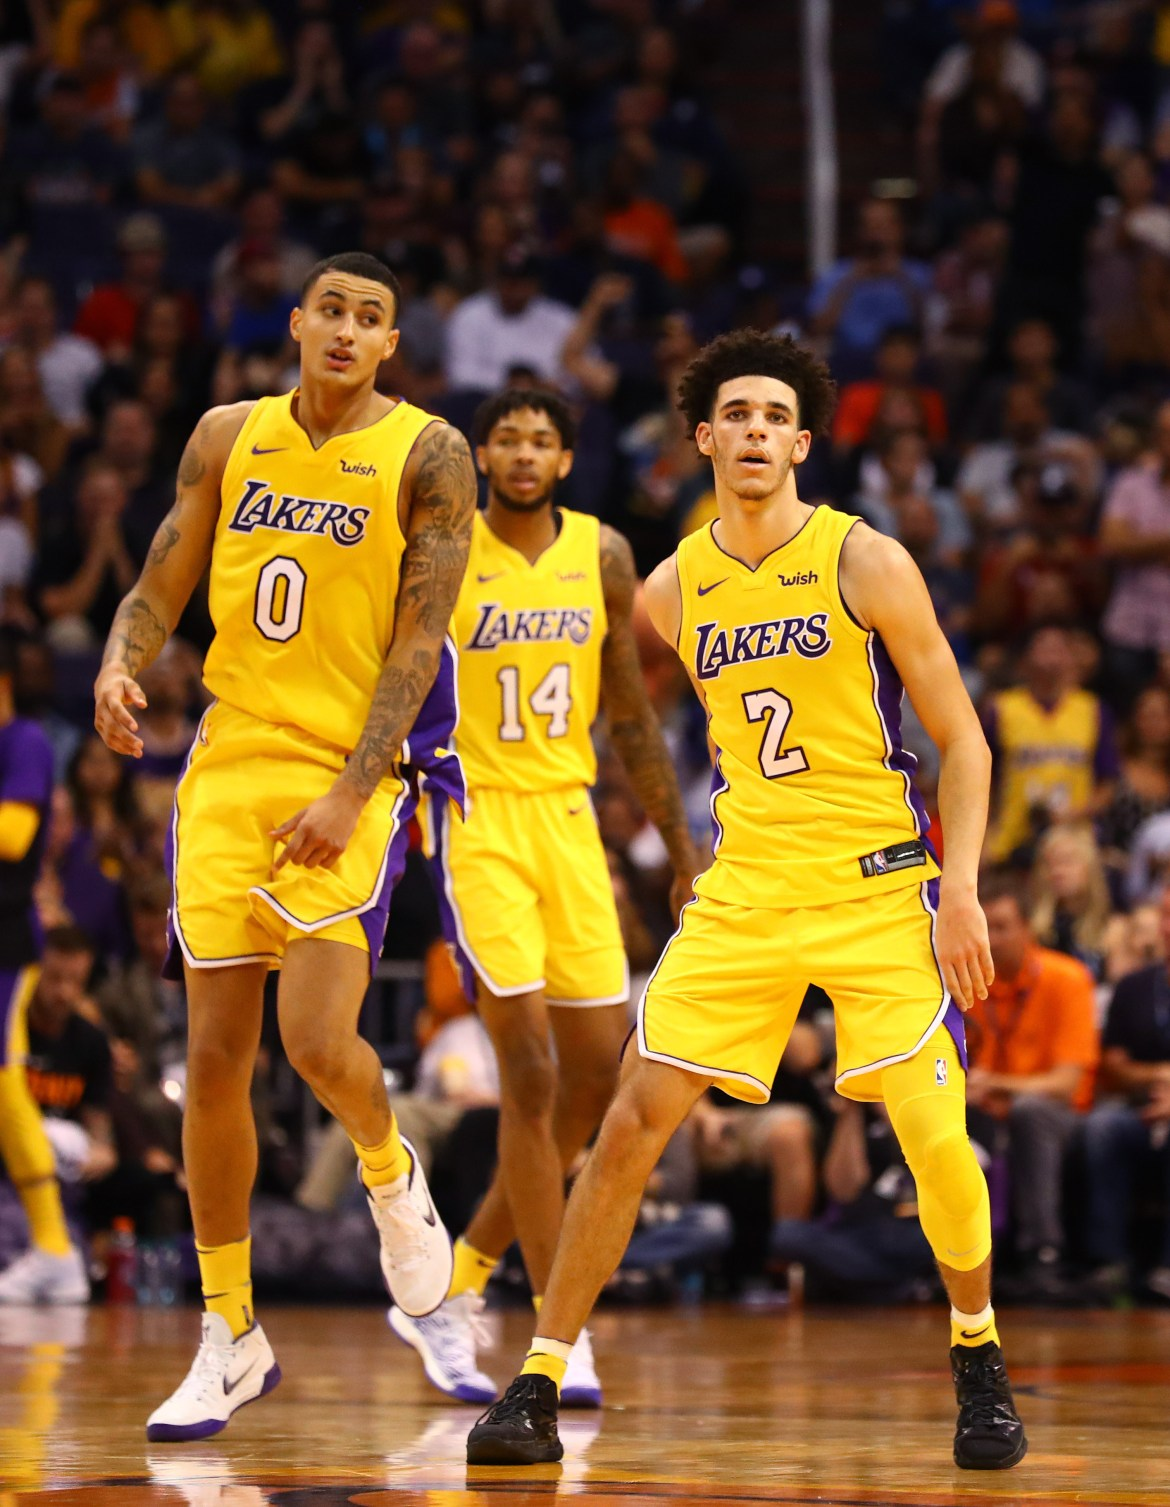 lonzo ball kyle kuzma brandon ingram yellow unis - Trending tales: Jahlil Okafor, Jimmy Butler, Kyle Kuzma and more